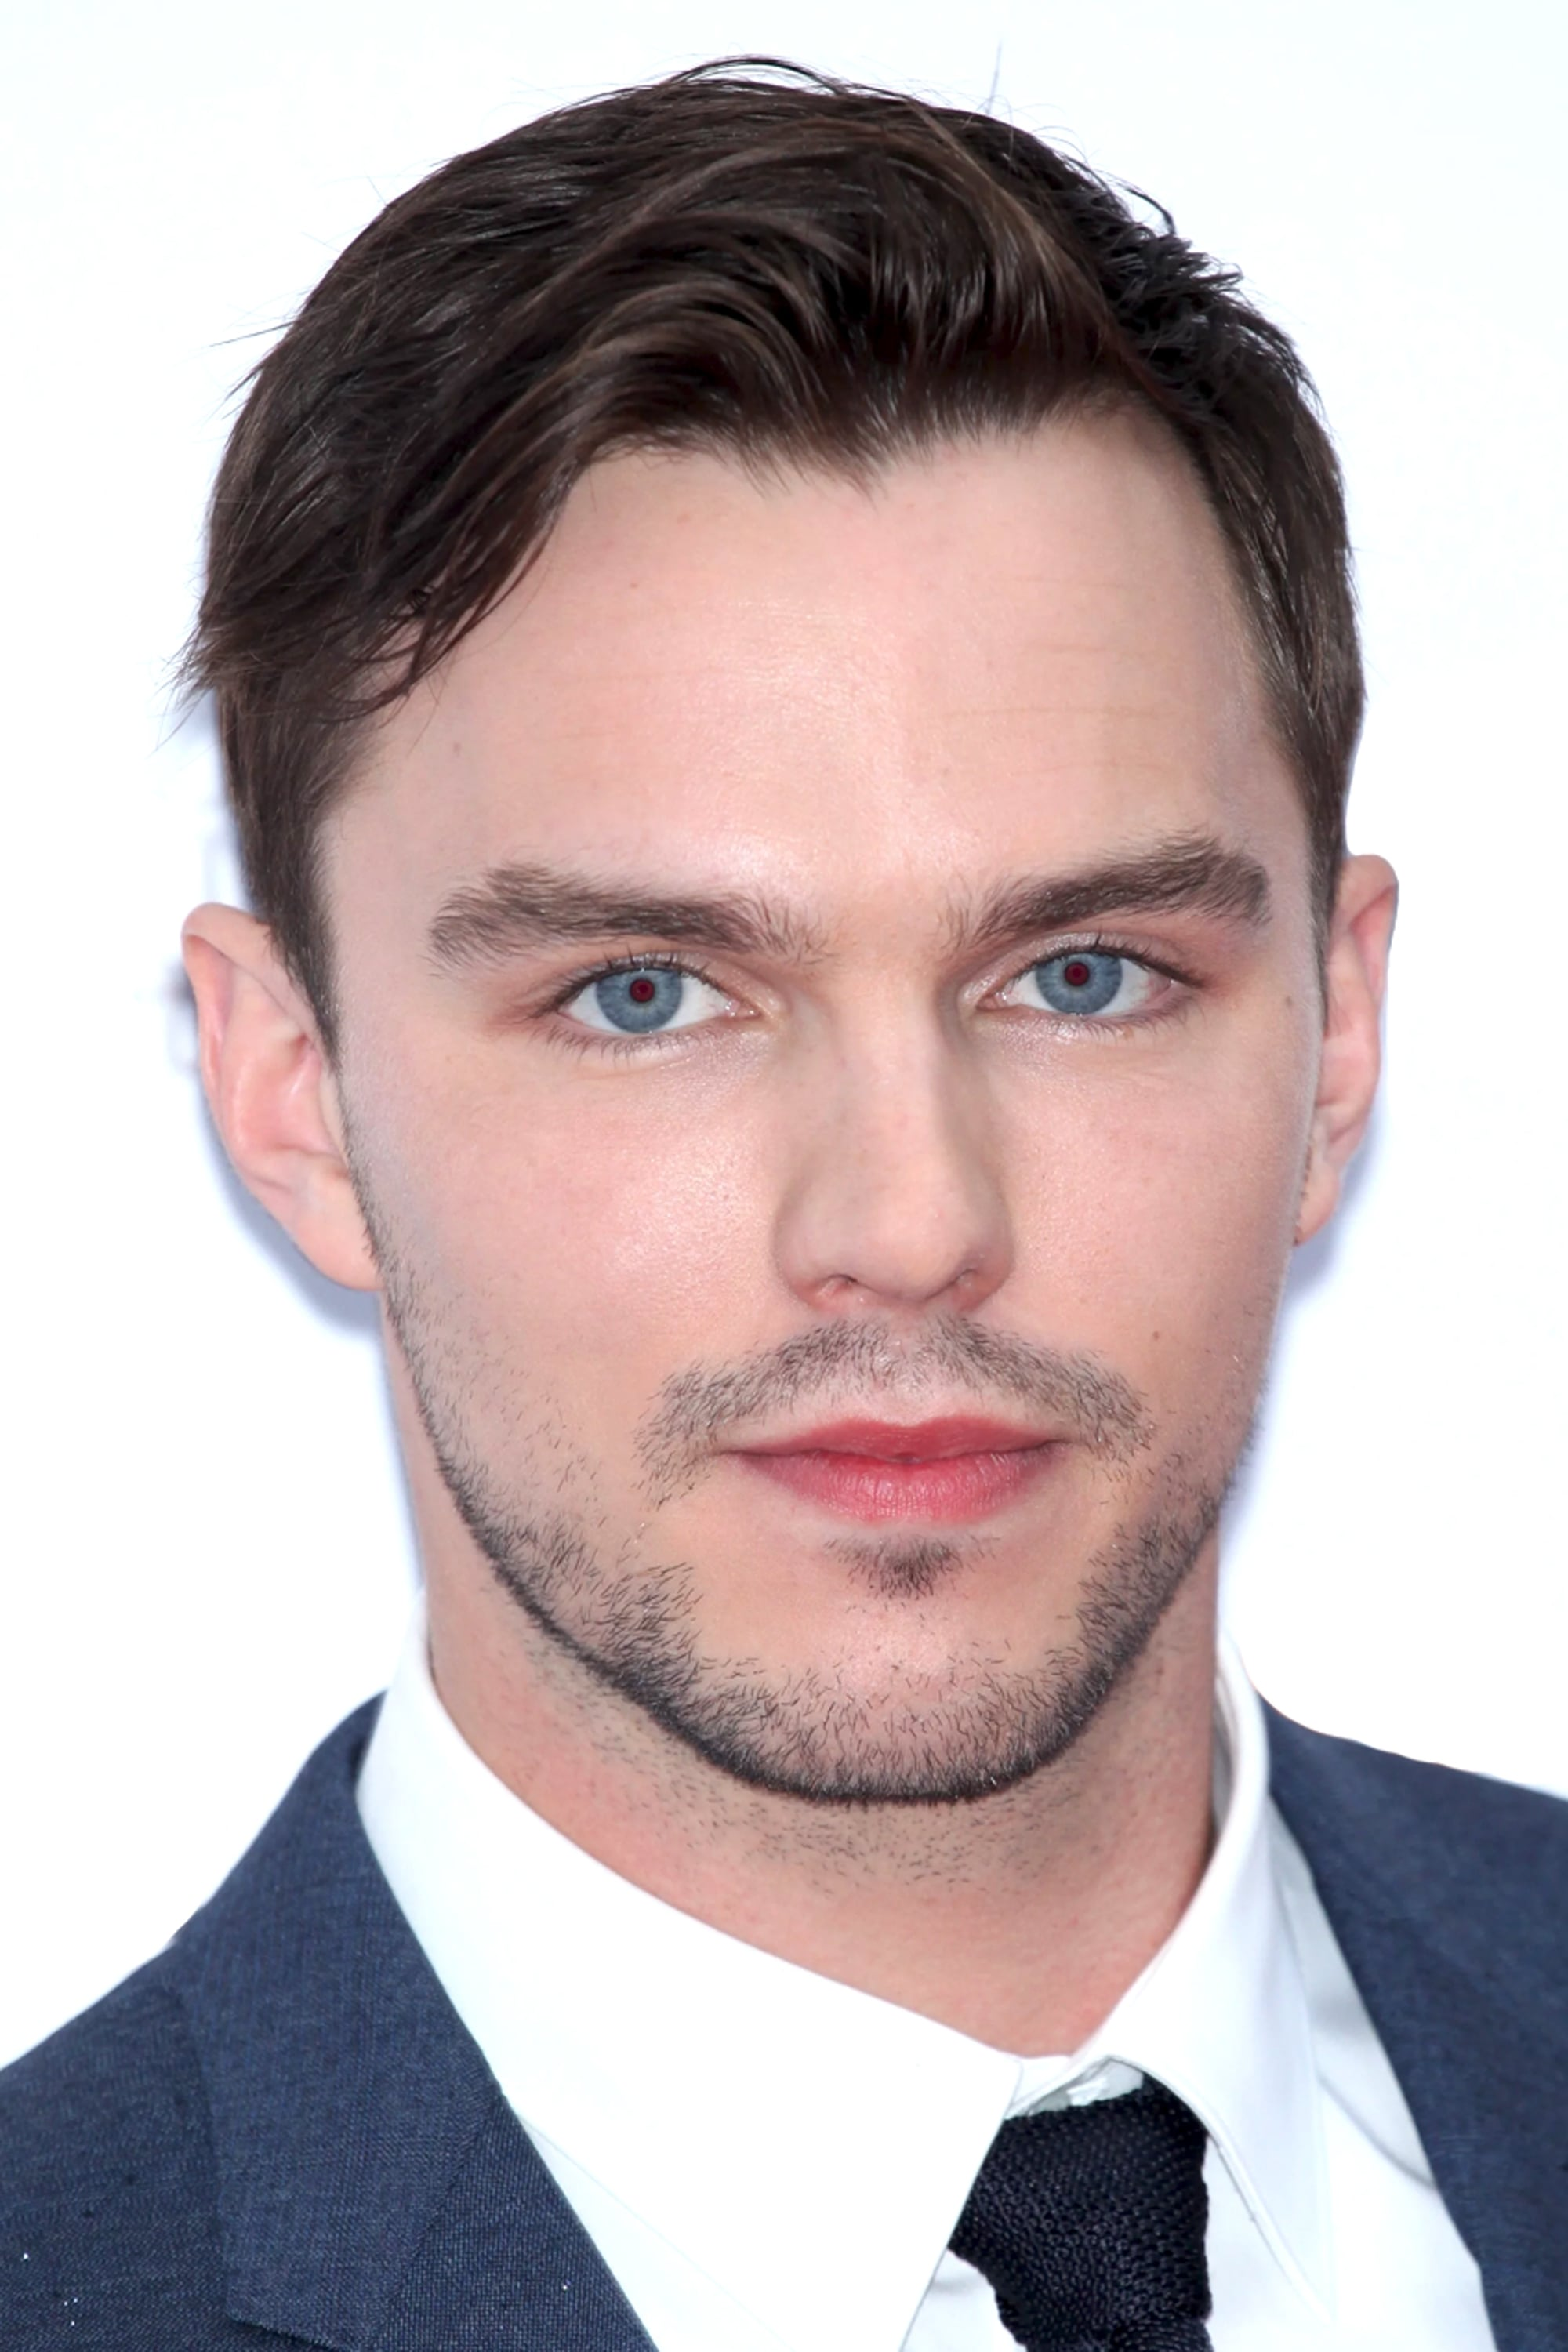 Nicholas Hoult - Profile Images — The Movie Database (TMDb)